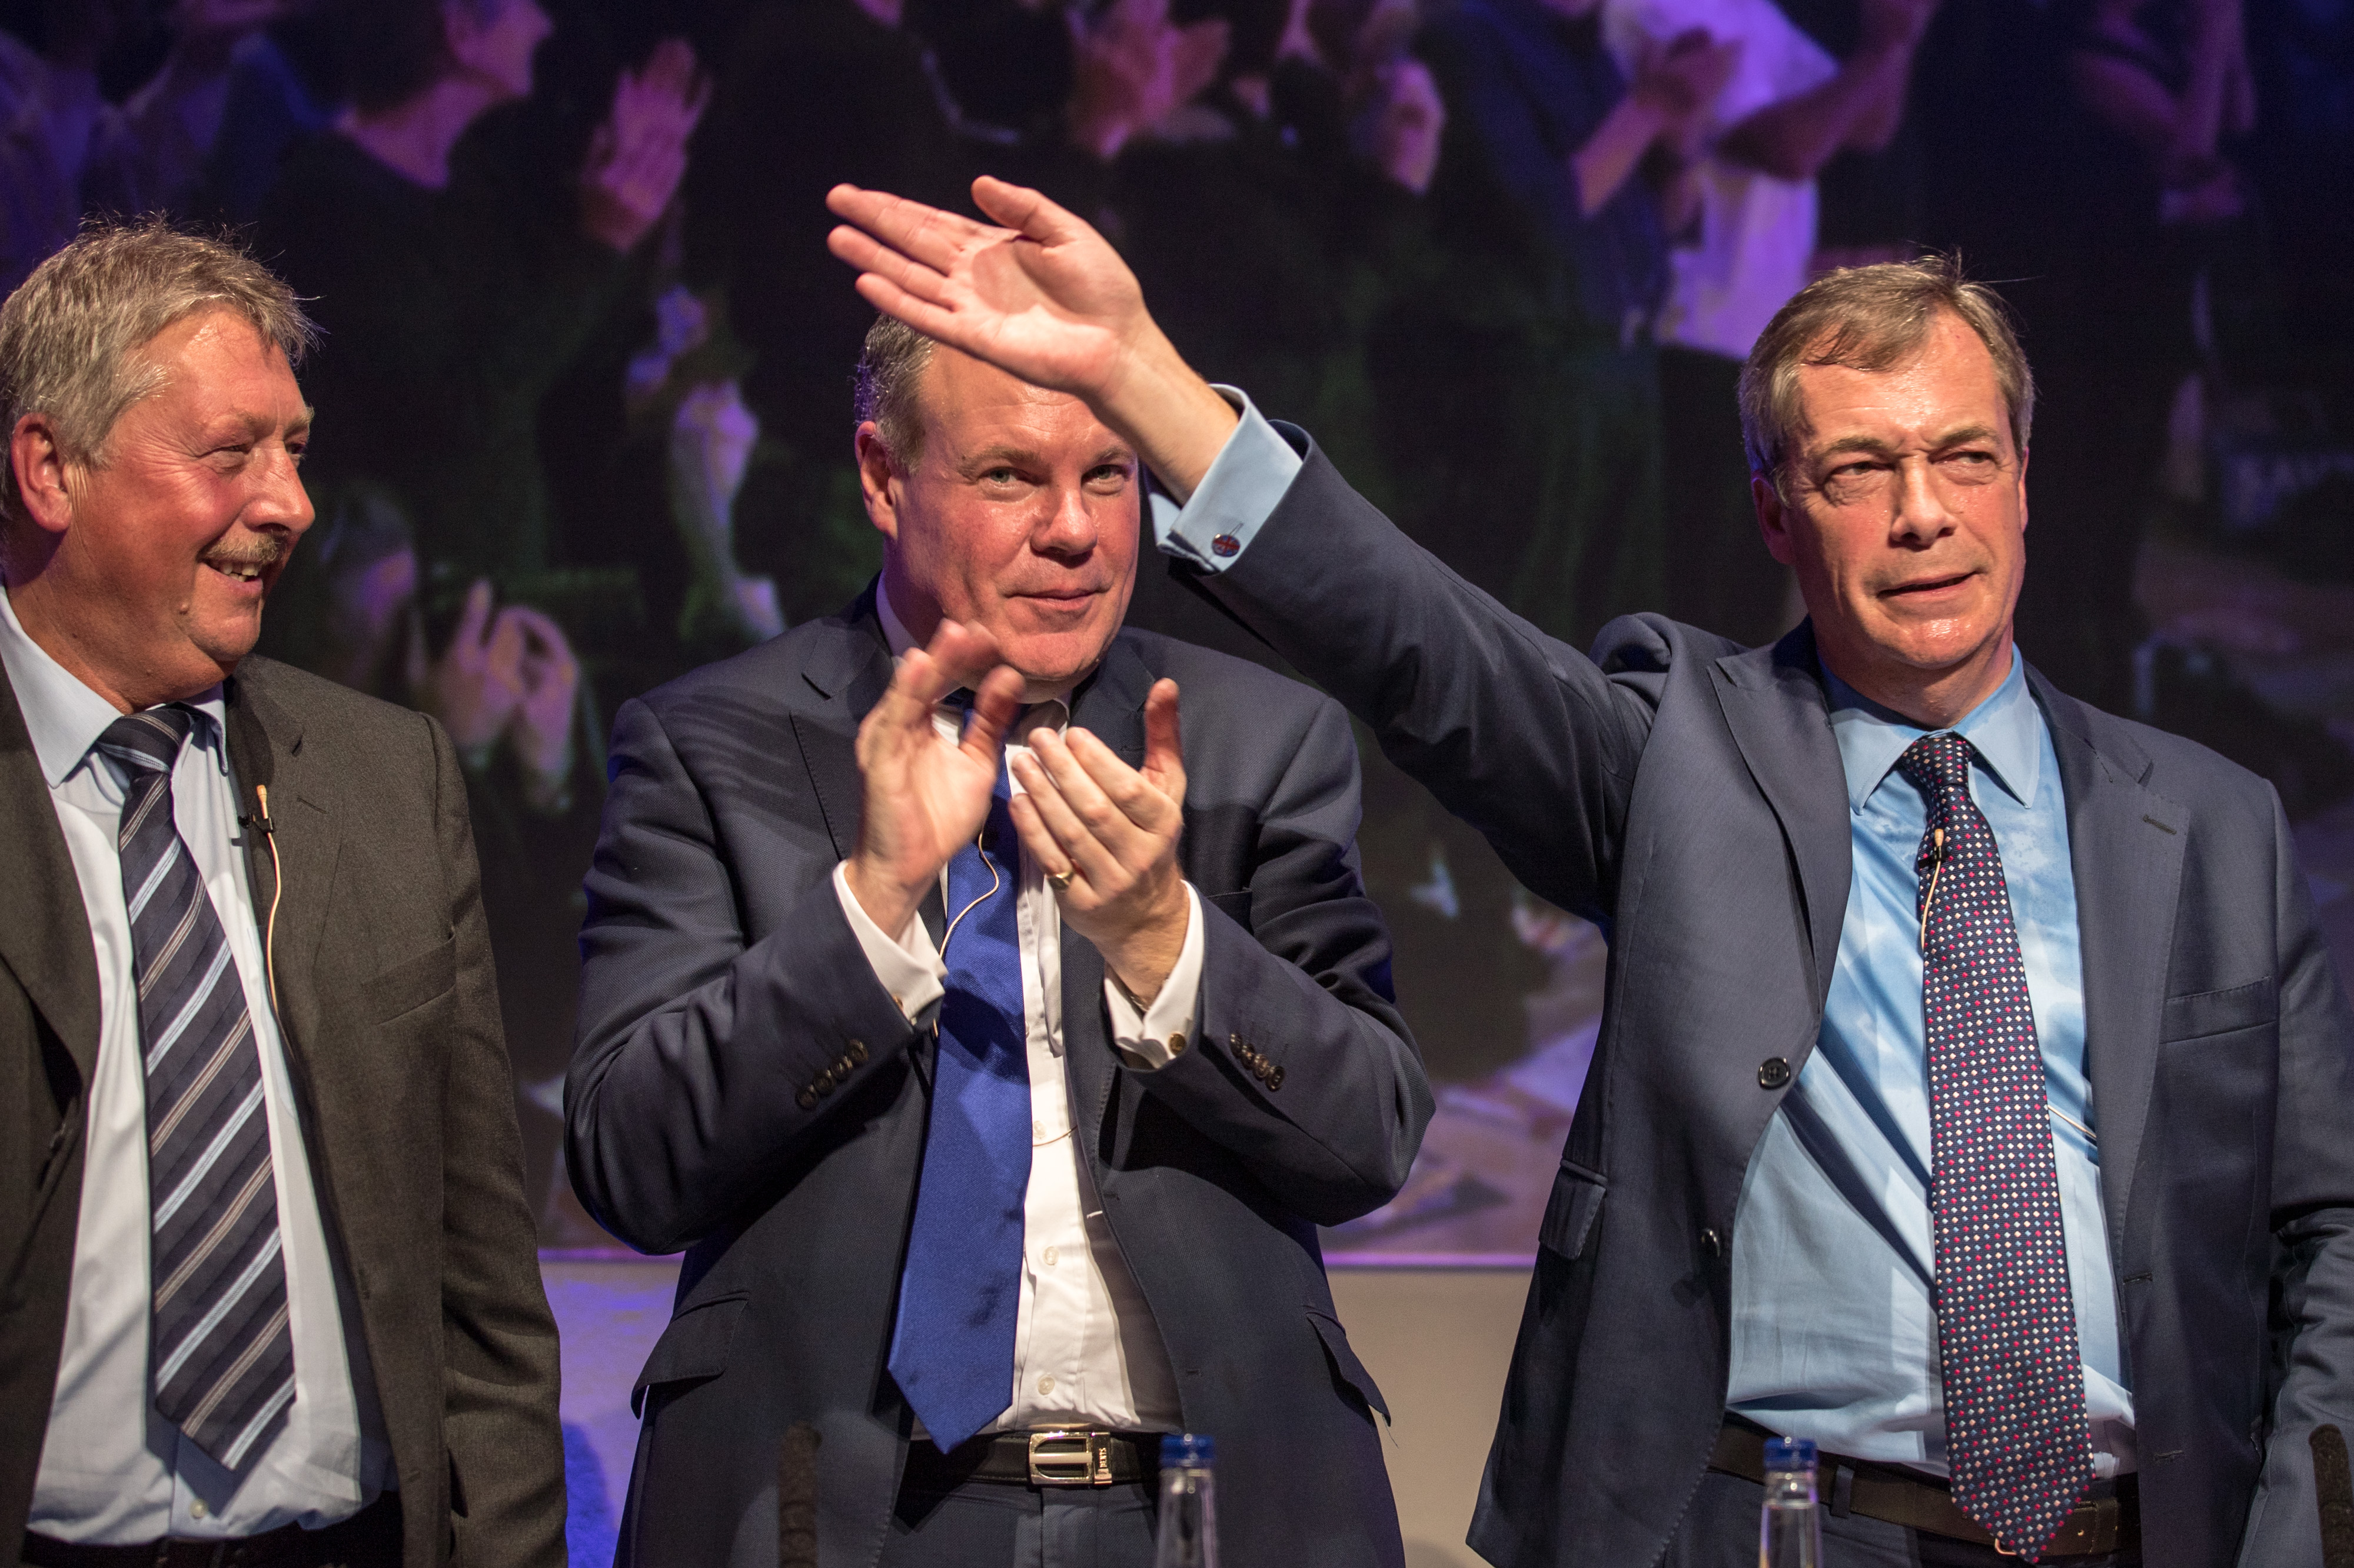 A woman went viral for rolling her eyes at Nigel Farage during a debate. (Photo by Matt Cardy/Getty Images)